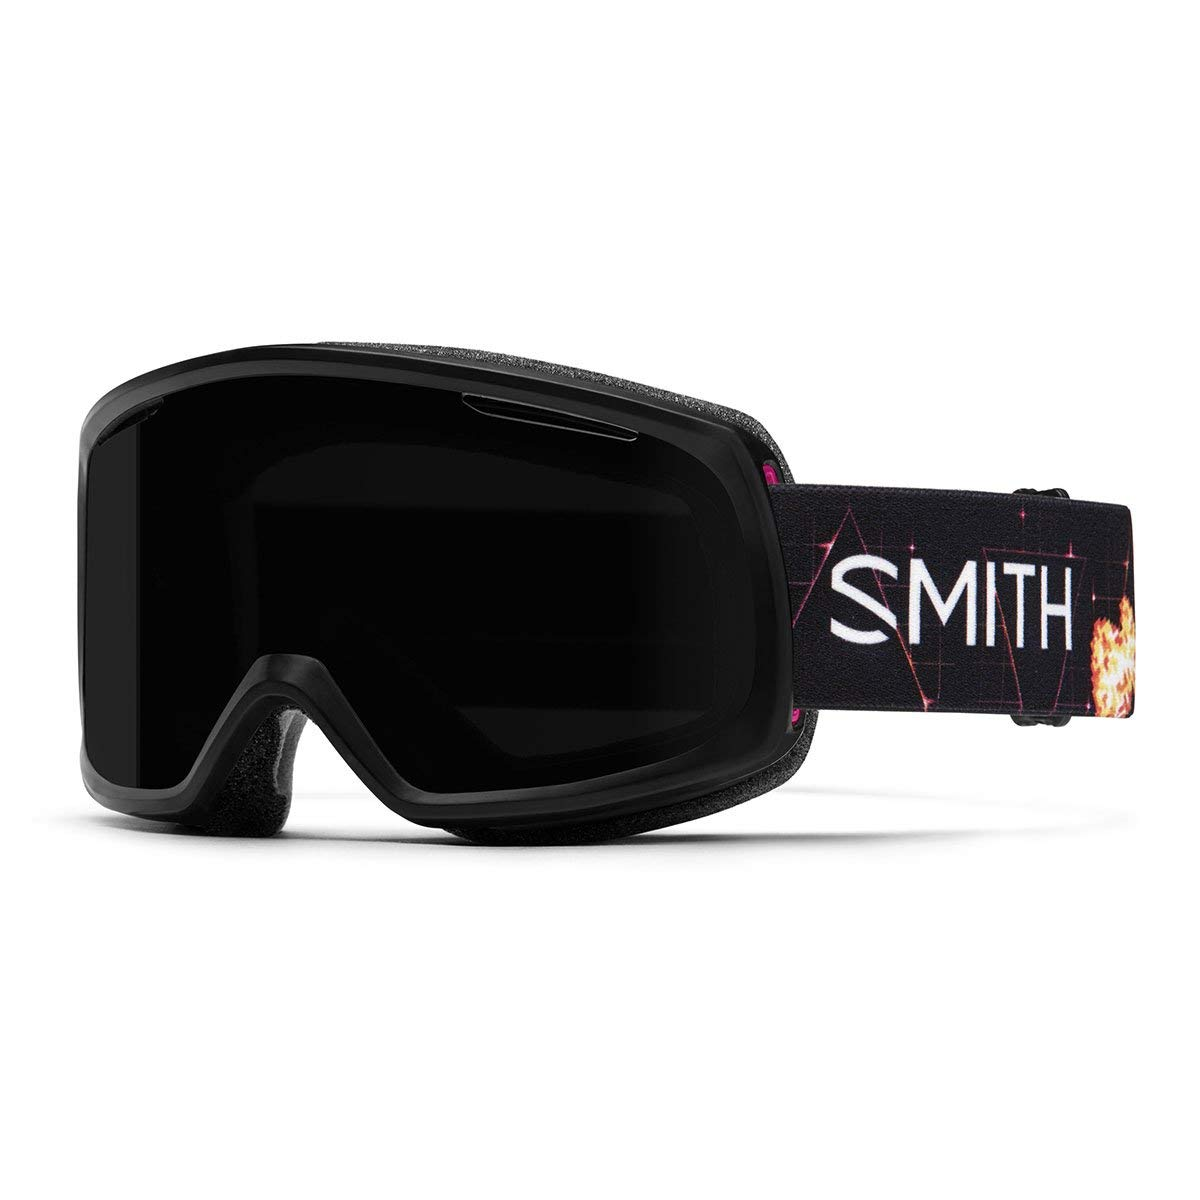 34f3c959b680 Get Quotations · Smith Optics Goggles Adult Riot Cylindrical Series  Oversized Lens RO2